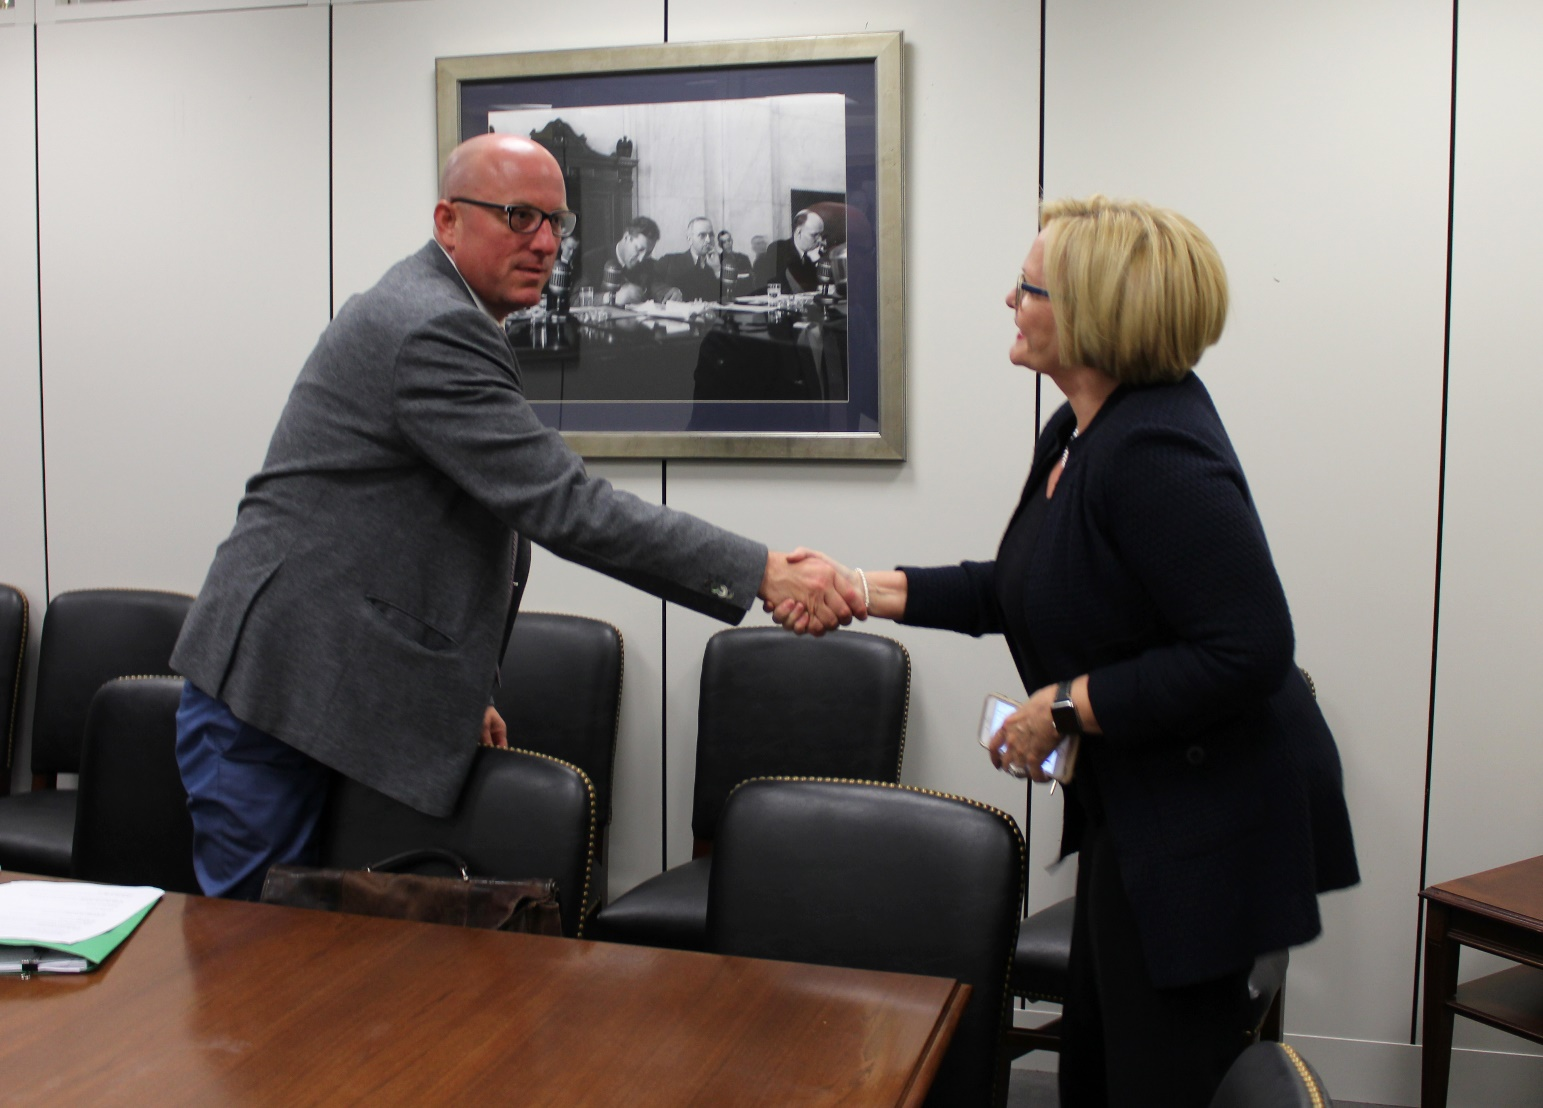 Senator McCaskill meets with SWAT president, talks community safety